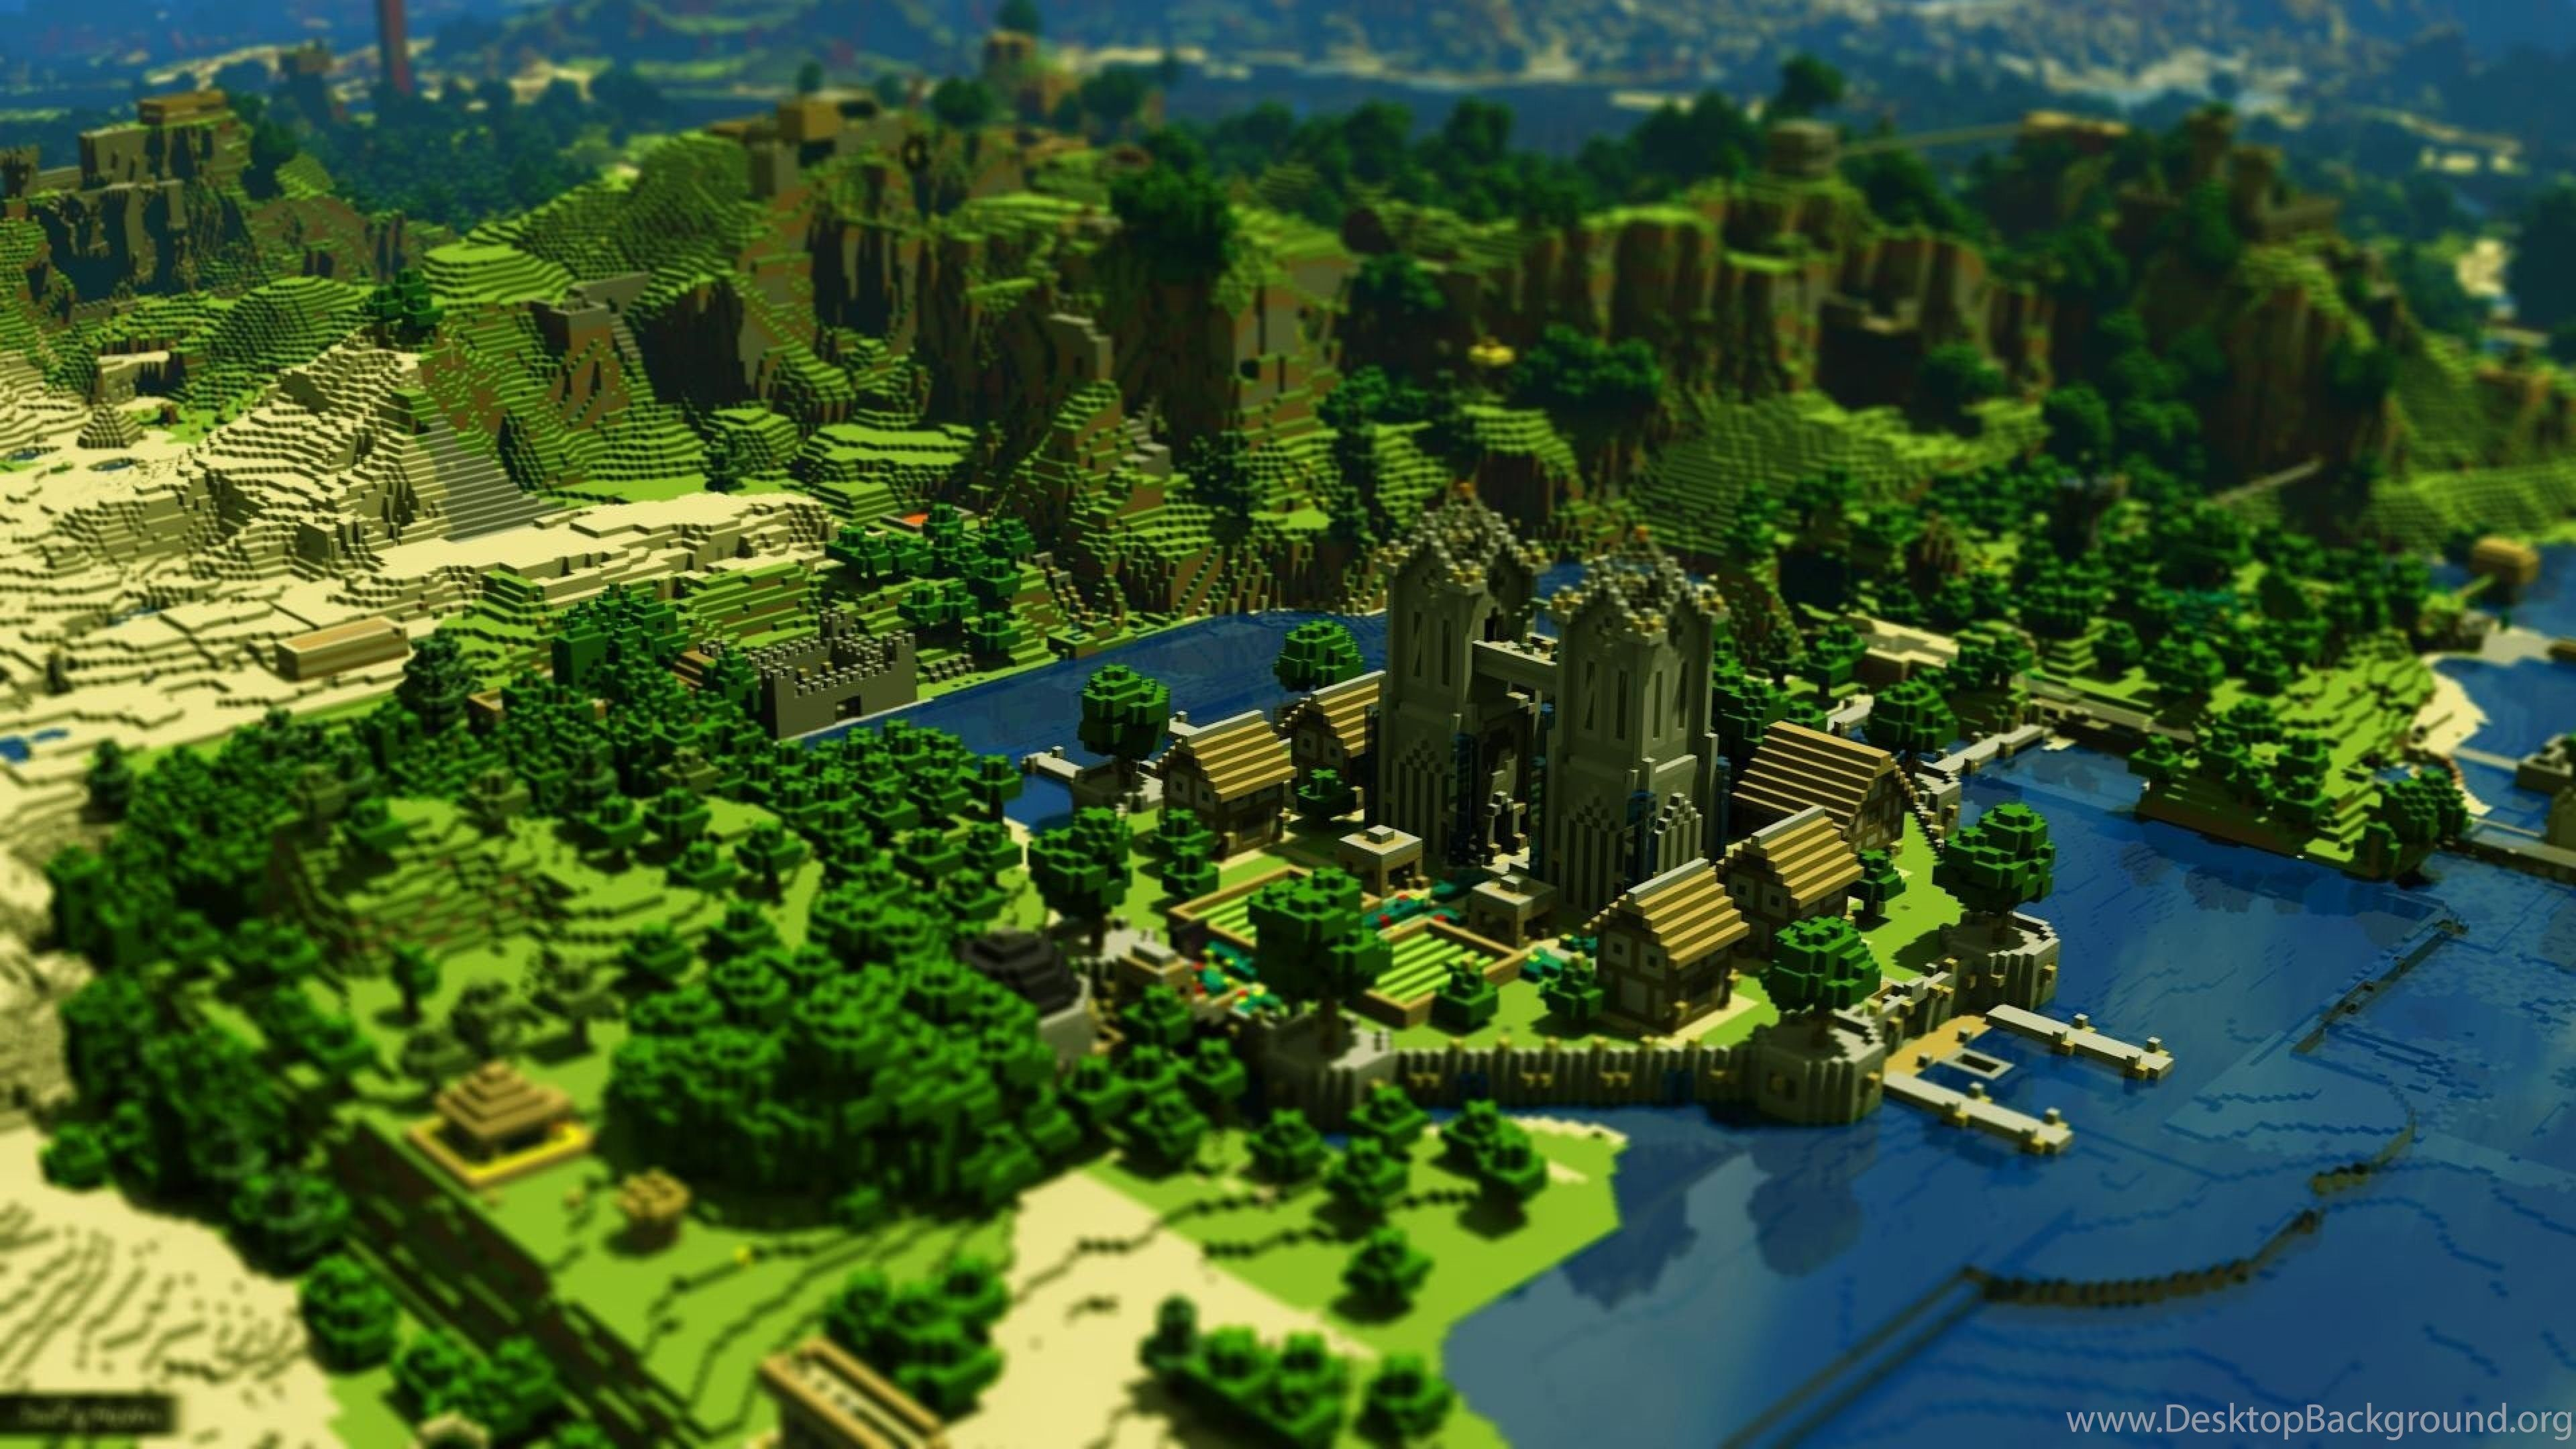 4k Minecraft Wallpapers Top Free 4k Minecraft Backgrounds Wallpaperaccess